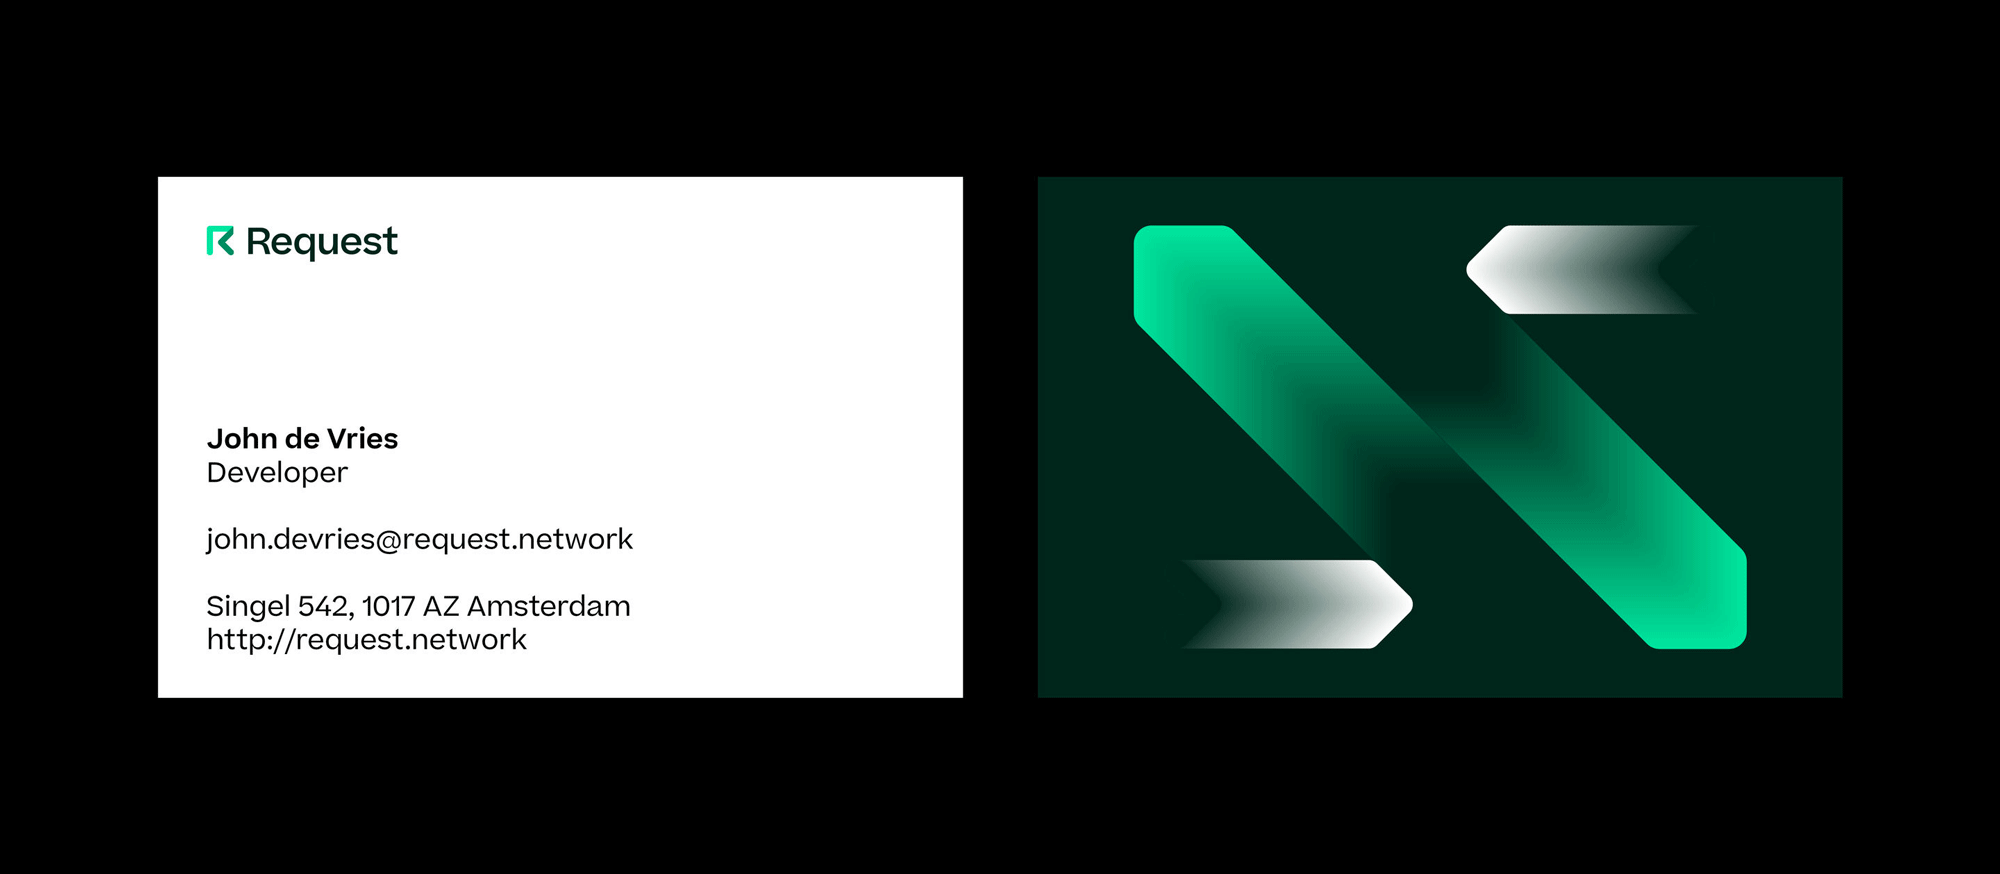 New Logo and Identity for Request by Studio Dumbar